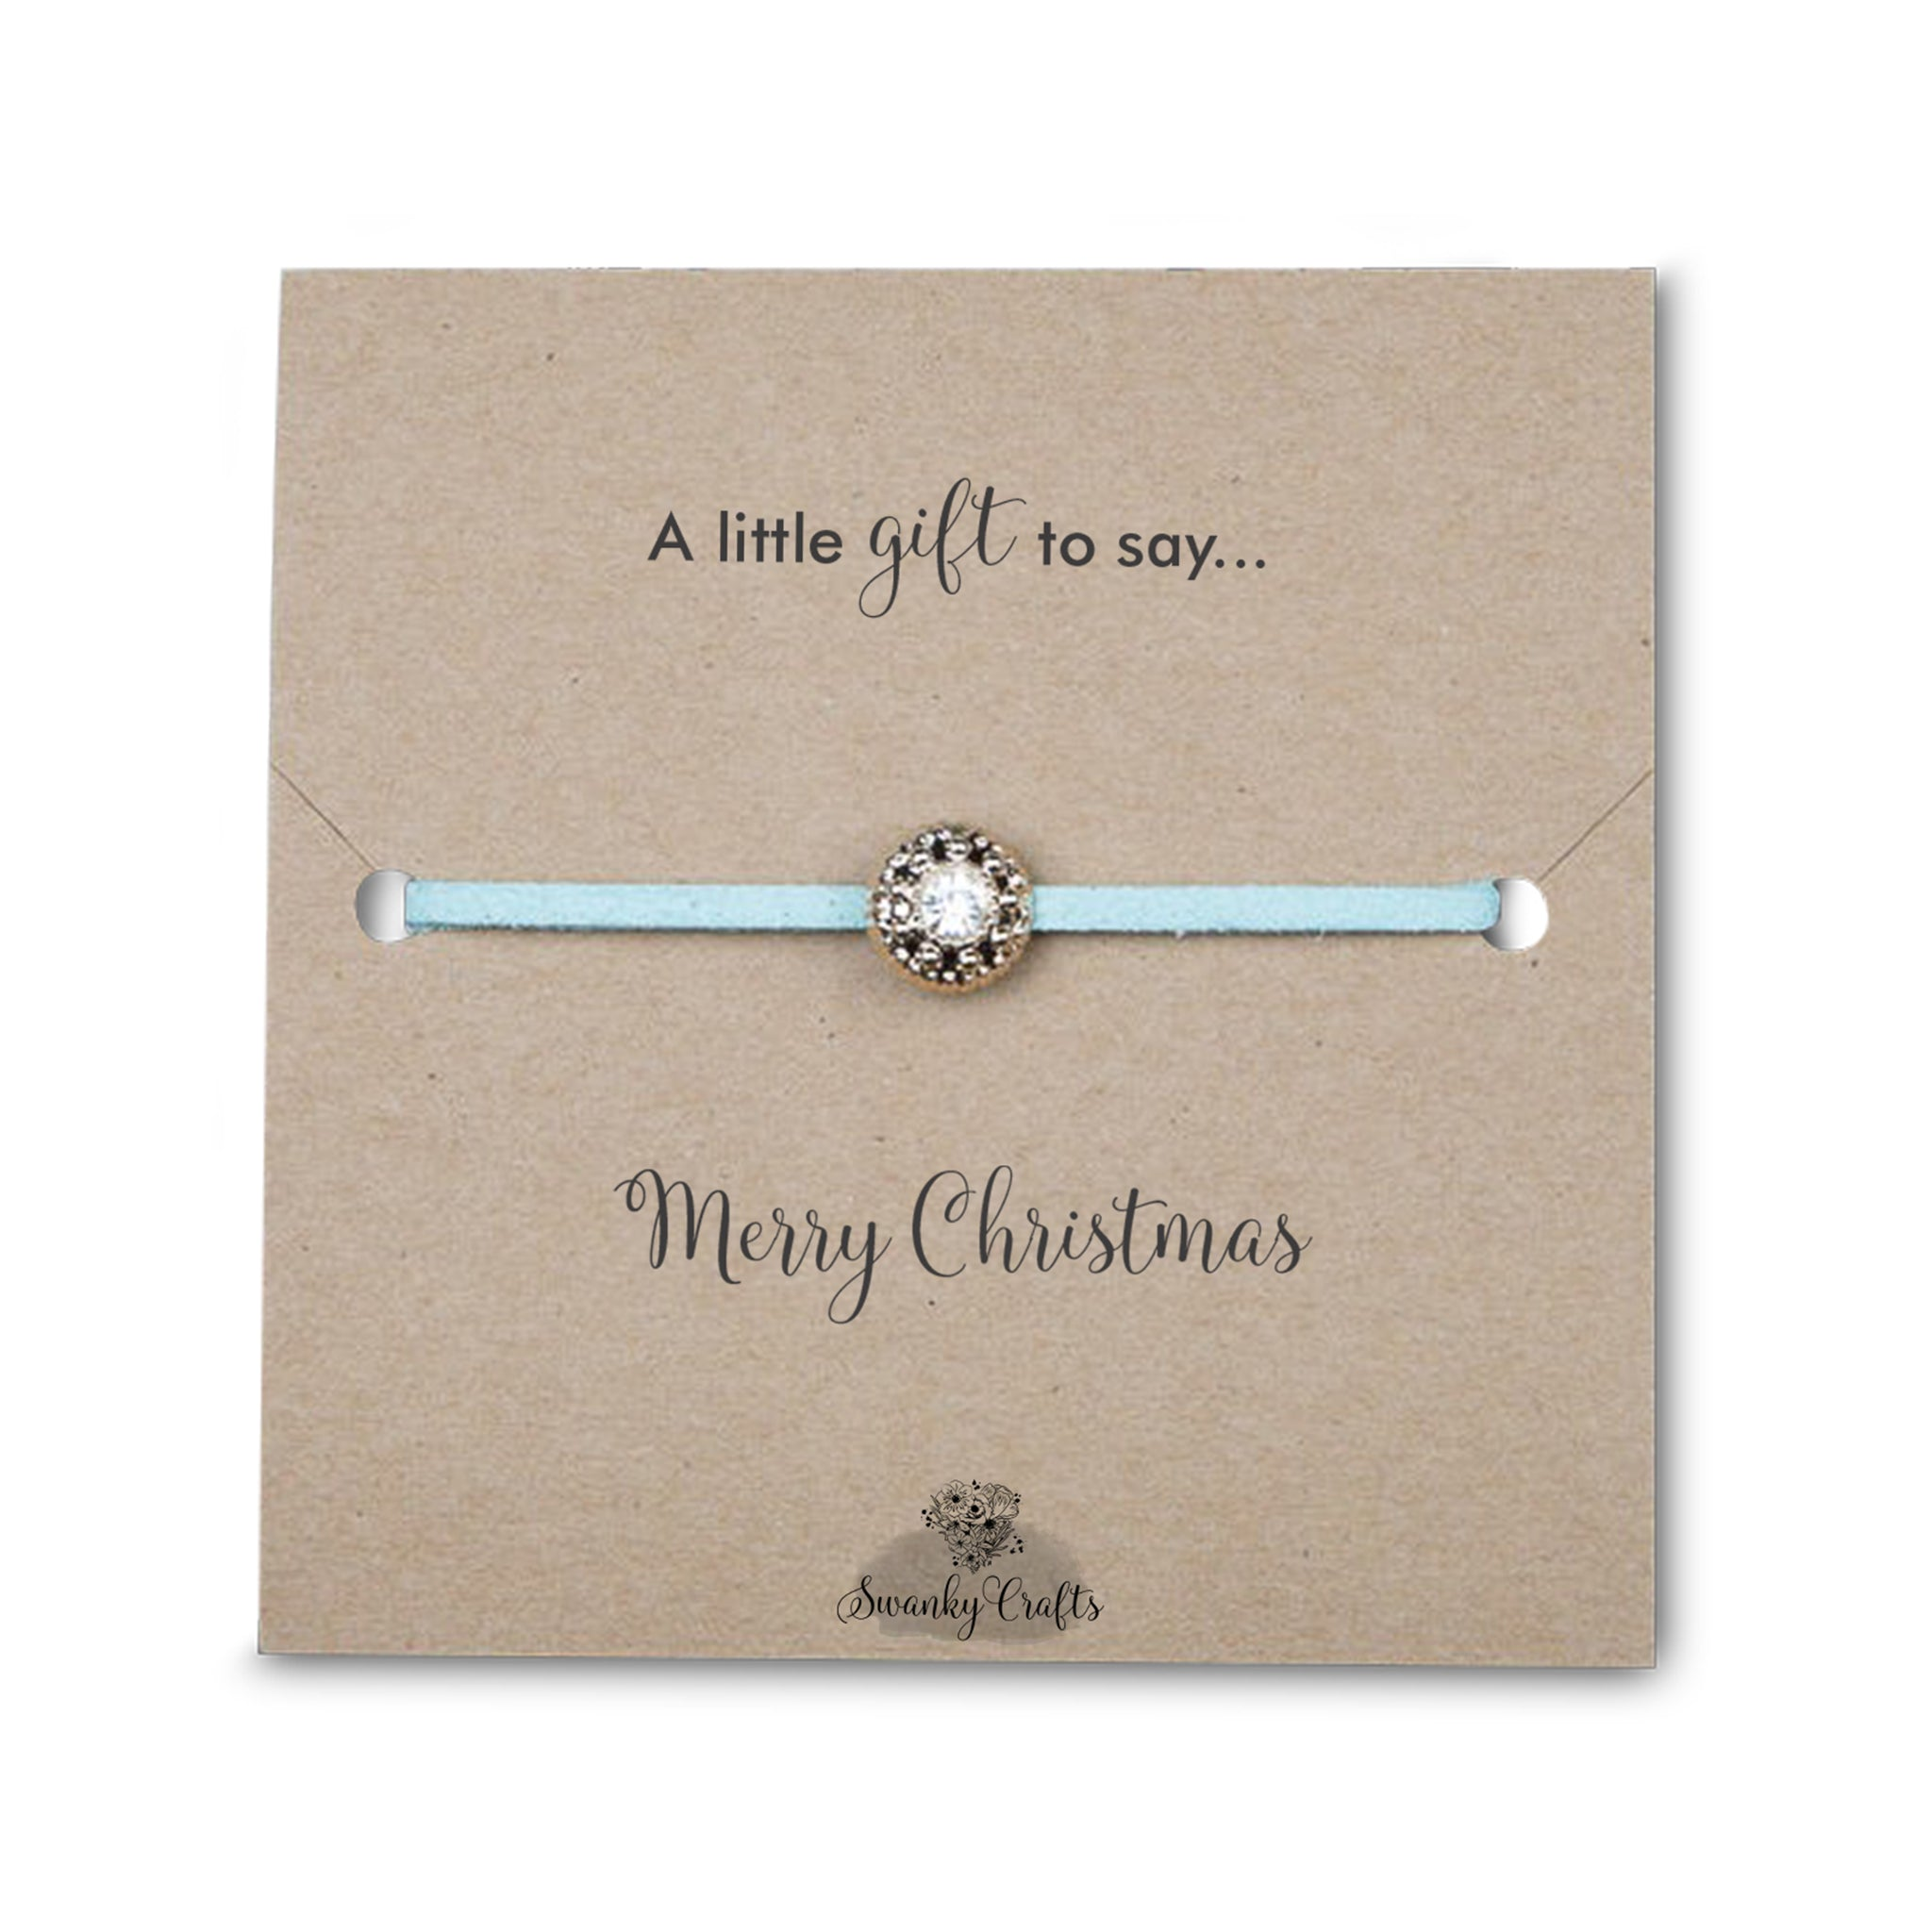 Christmas Gifts for Her - Handmade Sparkling Rhinestone Friendship Bracelets - Swanky Collection